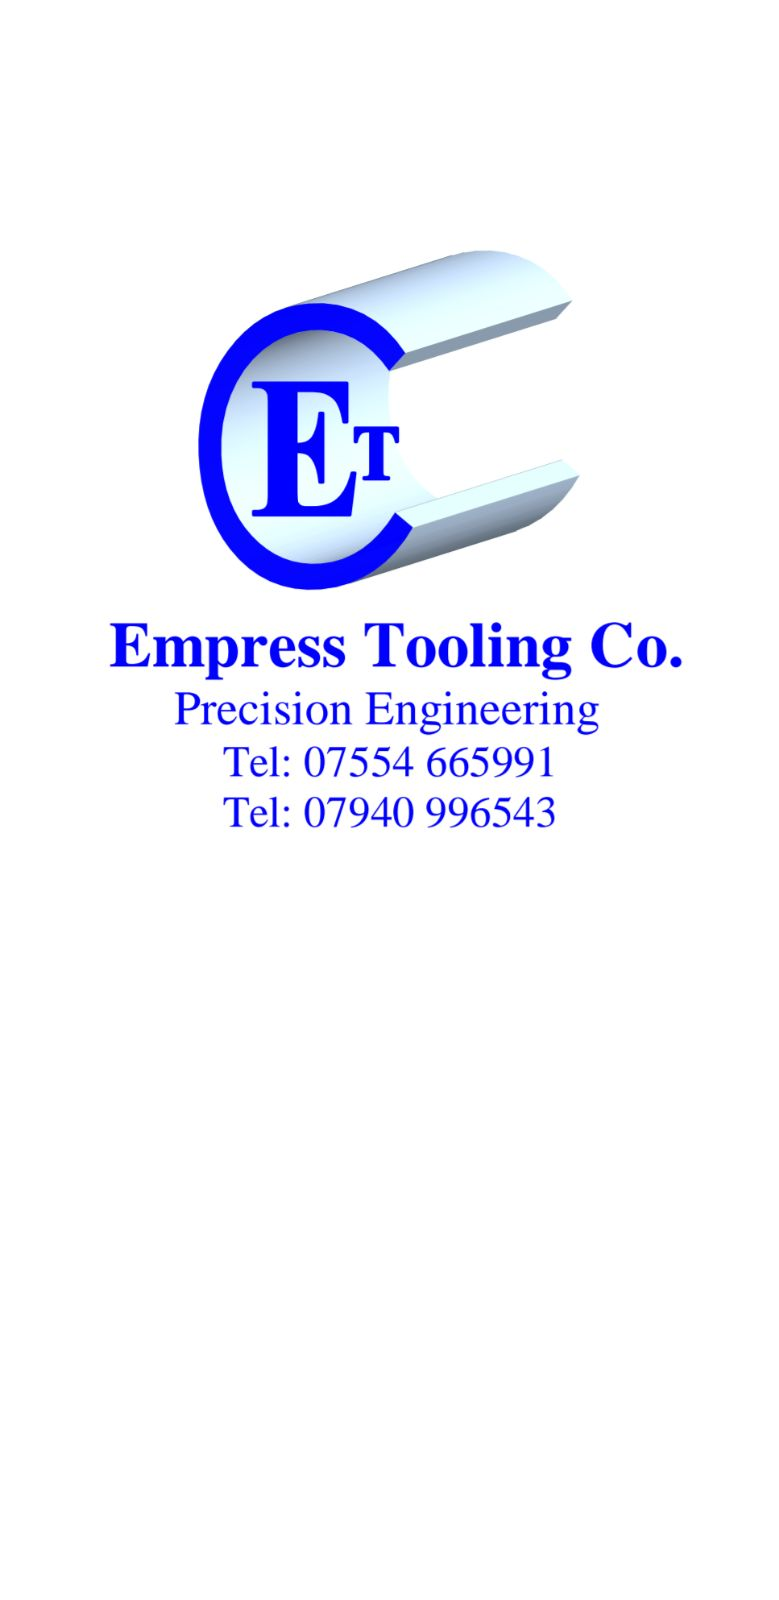 Empress Tooling Co.